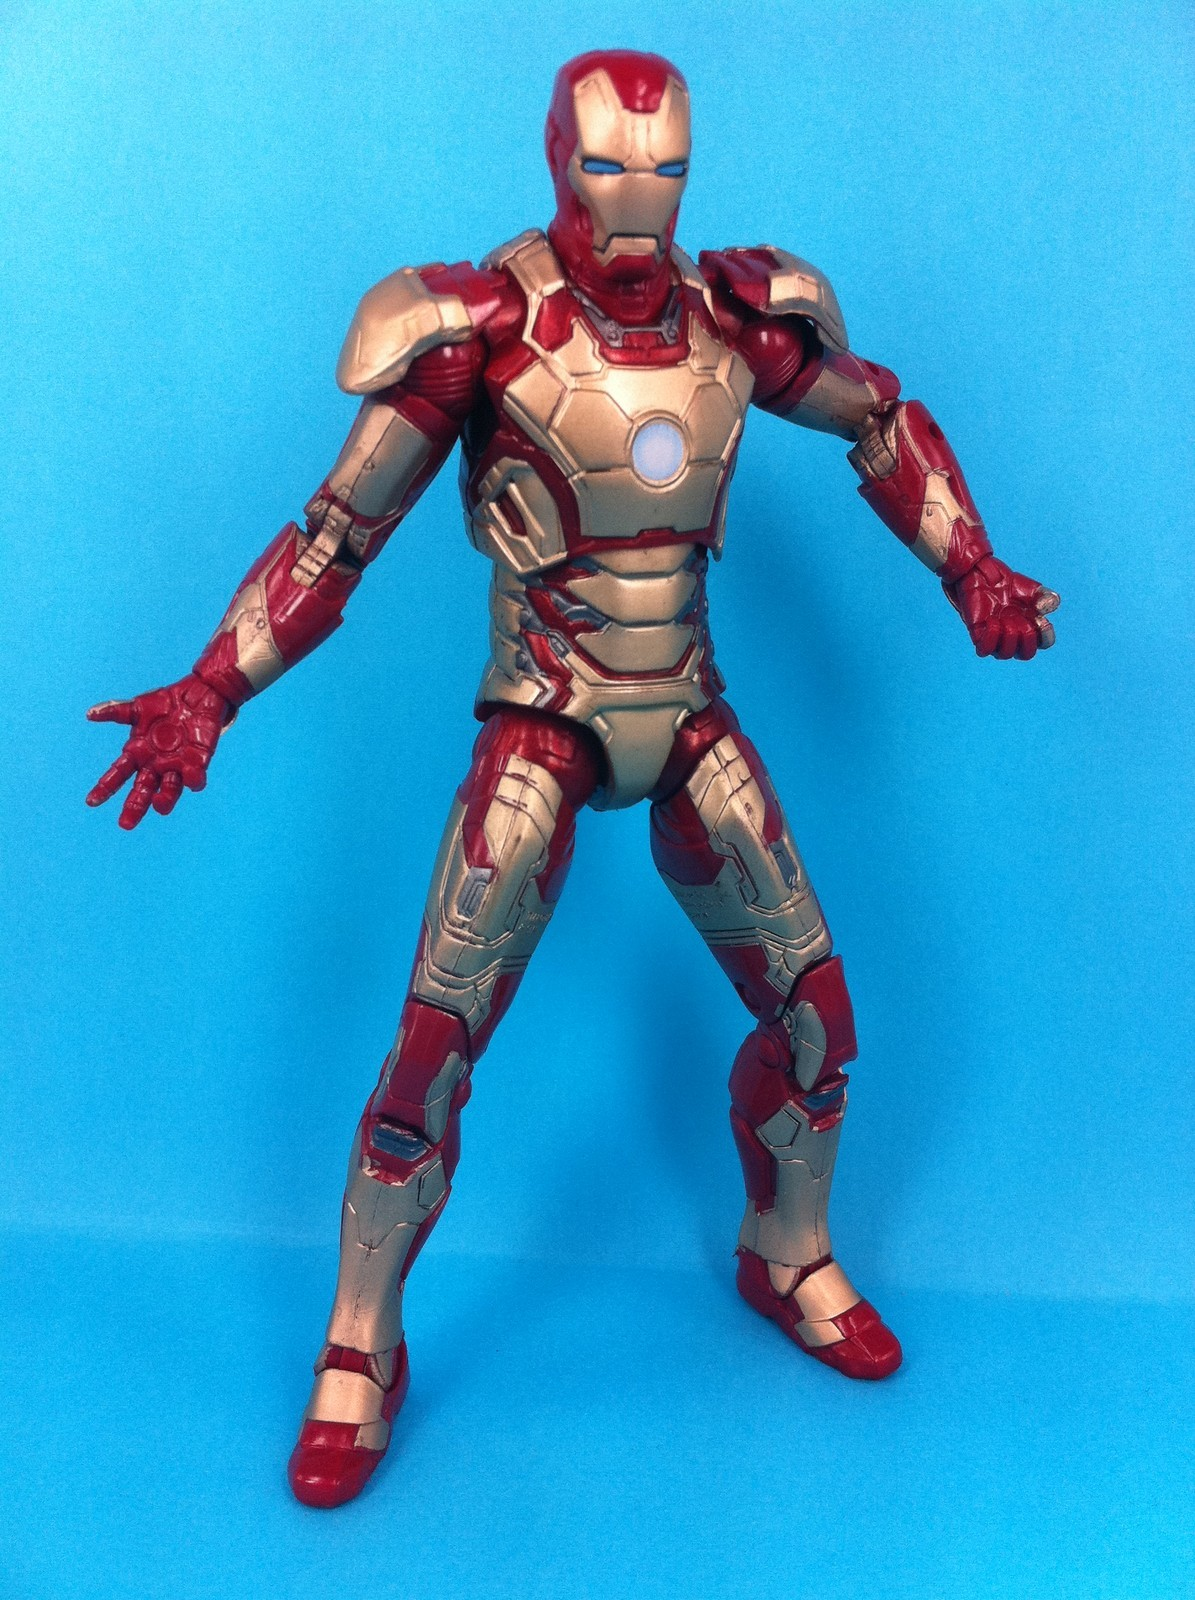 Iron Man 3 Marvel Legends Iron Man Mark 42 Armor - The ...